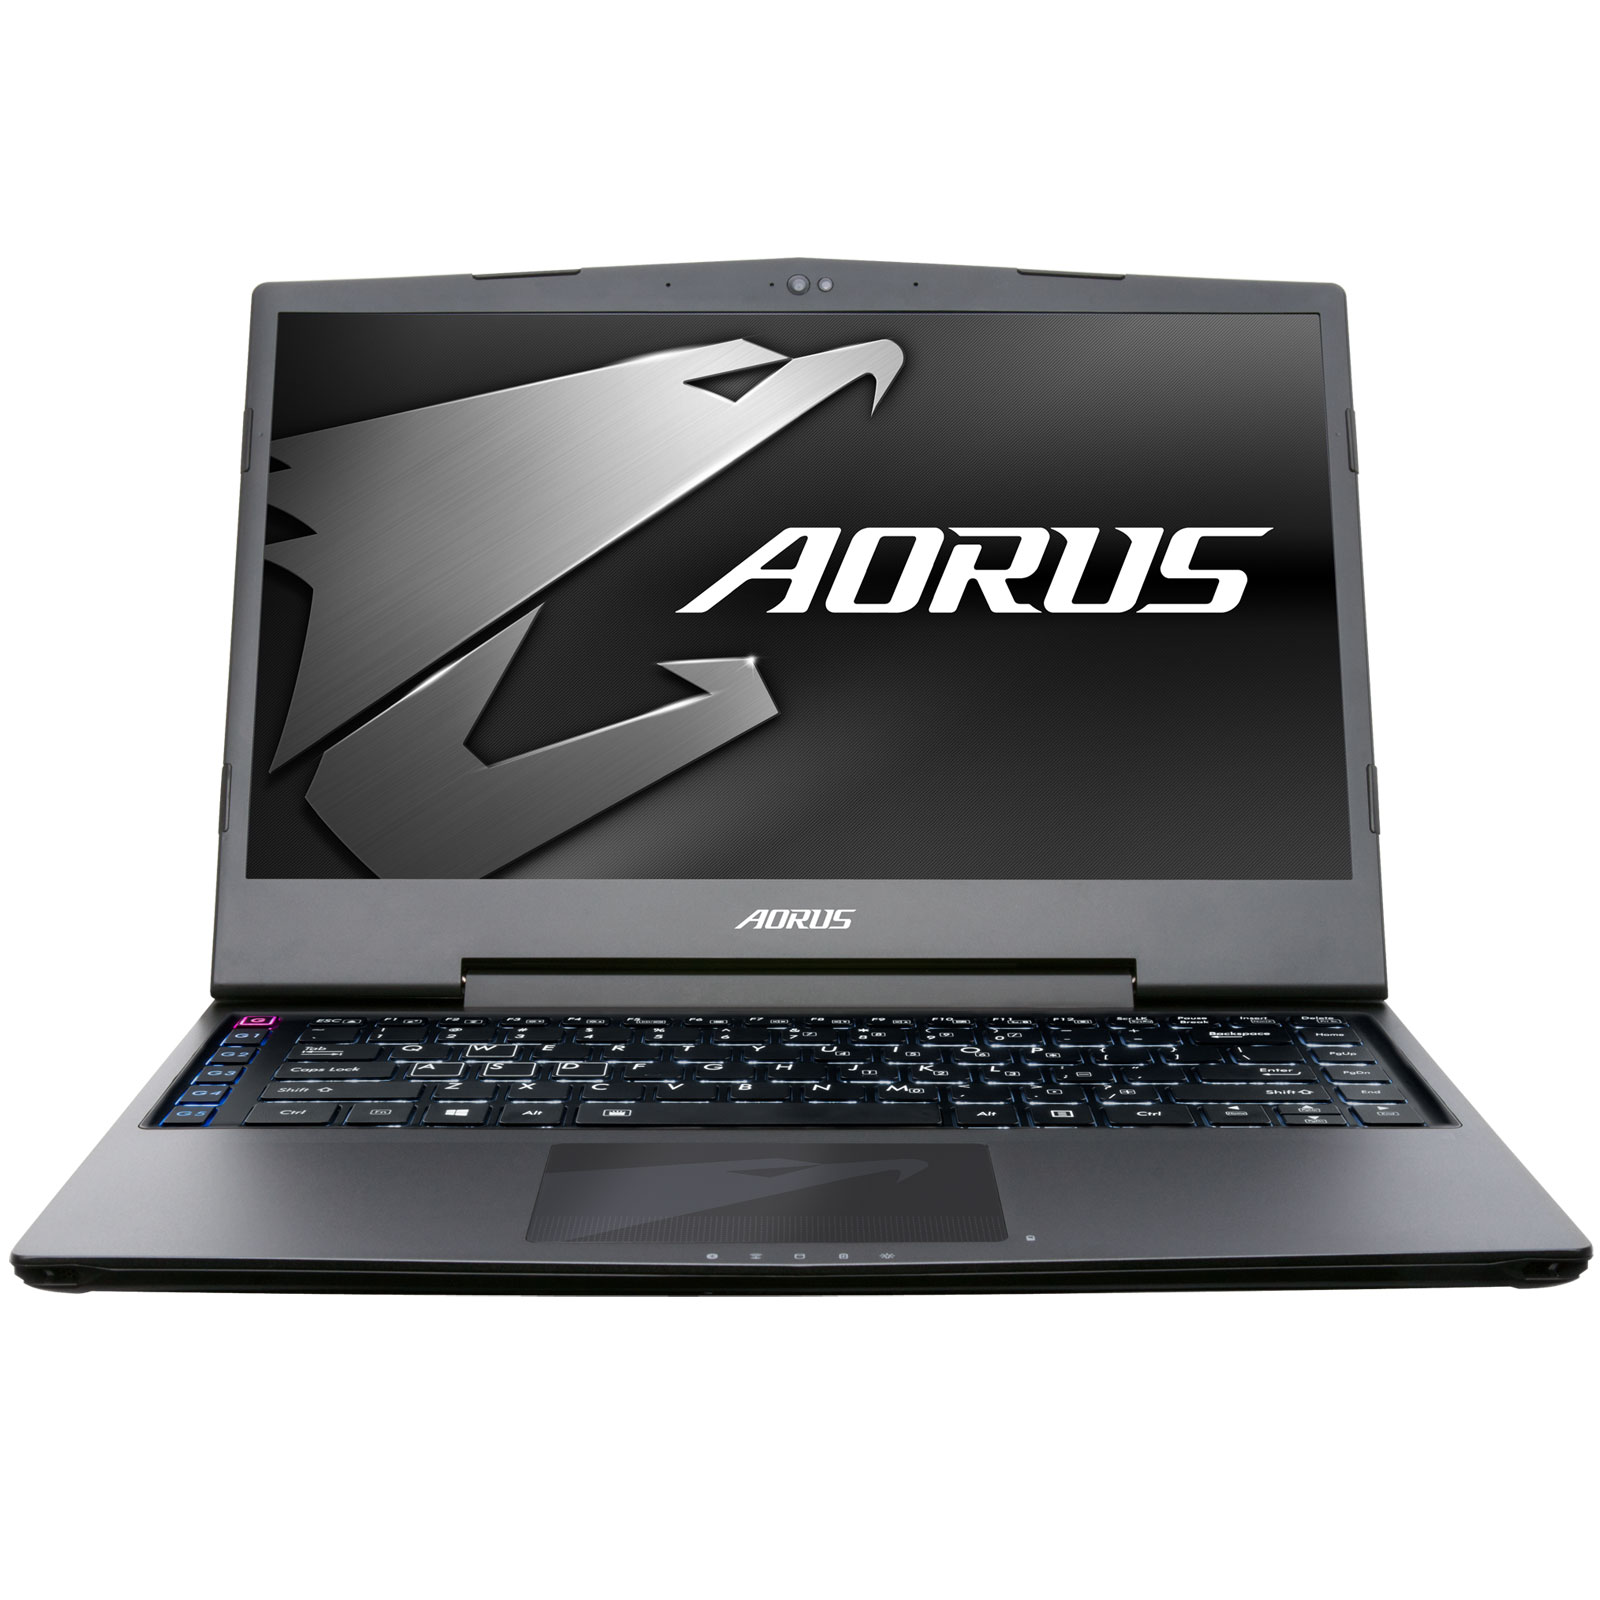 "PC portable AORUS X3 Plus v7 K1NW10-FR Intel Core i7-7820HK 16 Go SSD 512 Go 13.9"" LED QHD+ NVIDIA GeForce GTX 1060 6 Go Wi-Fi AC/Bluetooth Webcam Windows 10 Famille 64 bits"